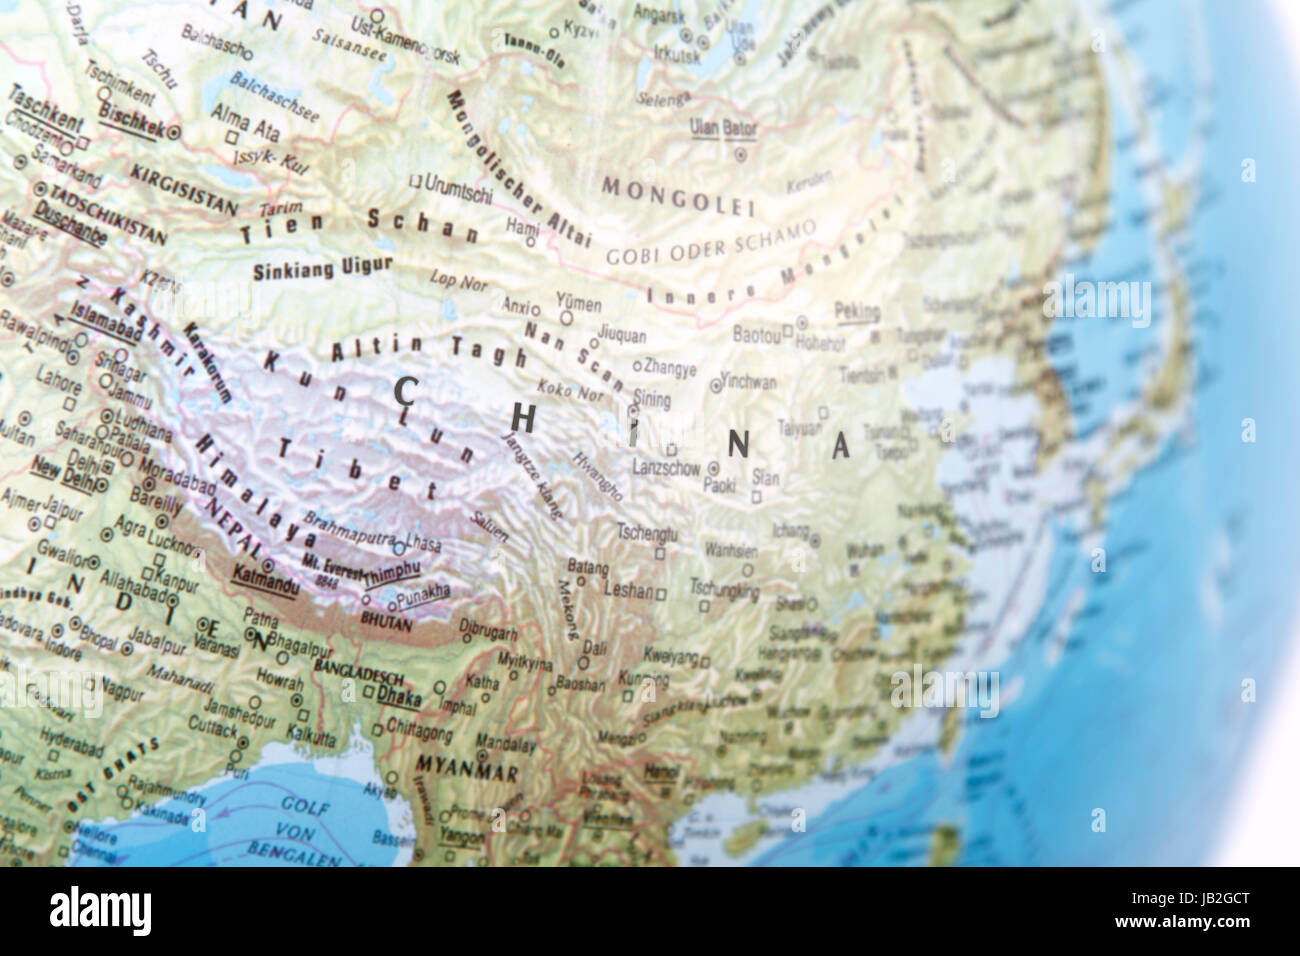 Chinese Geography Chinese Geography Stock Photos Chinese Geography Stock Images